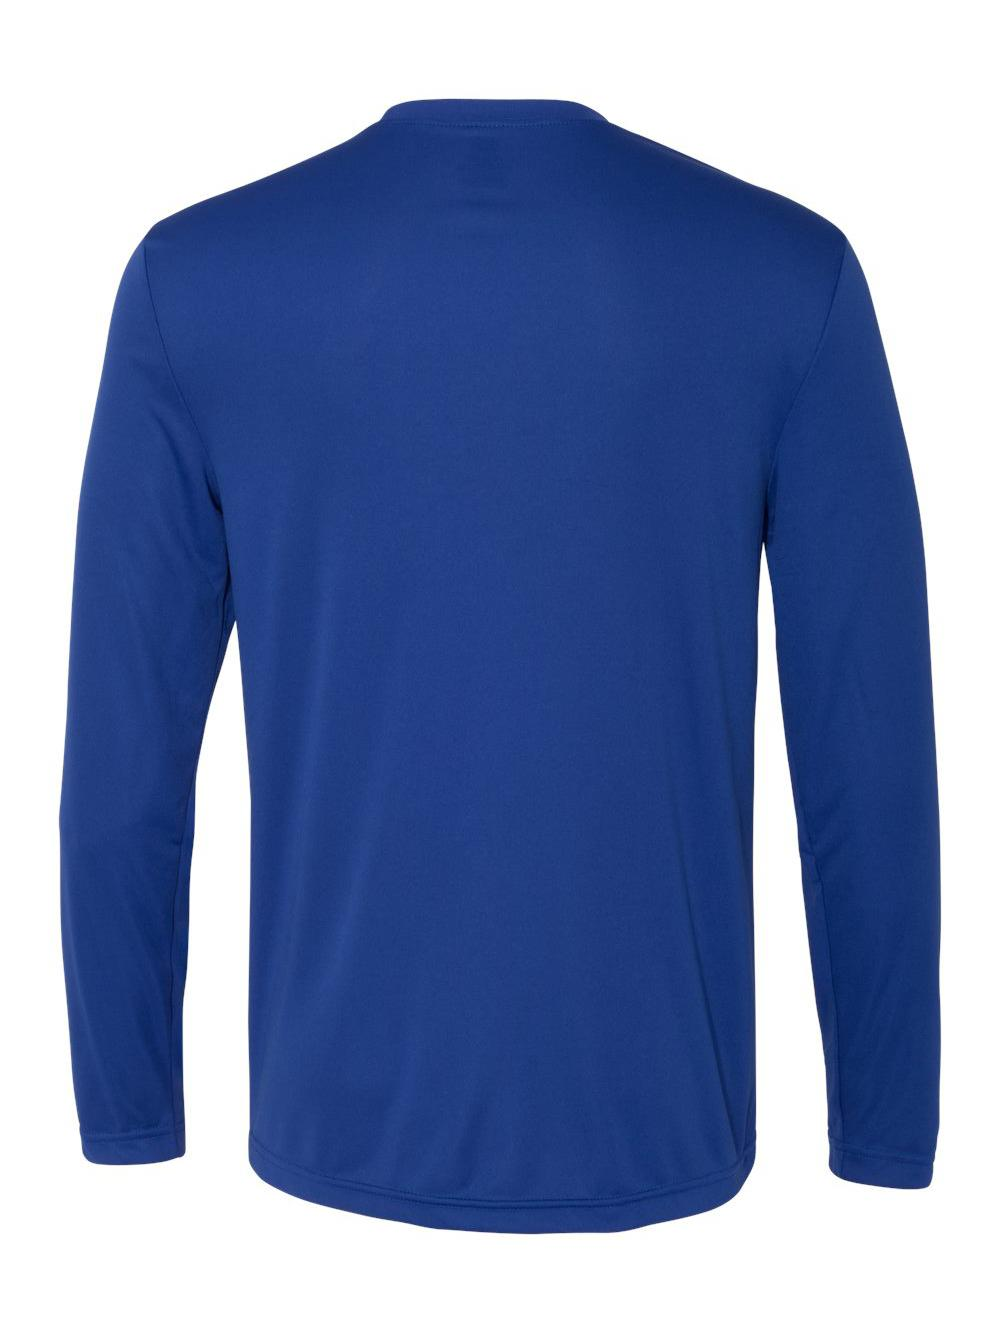 Hanes-Cool-Dri-Long-Sleeve-Performance-T-Shirt-482L thumbnail 10